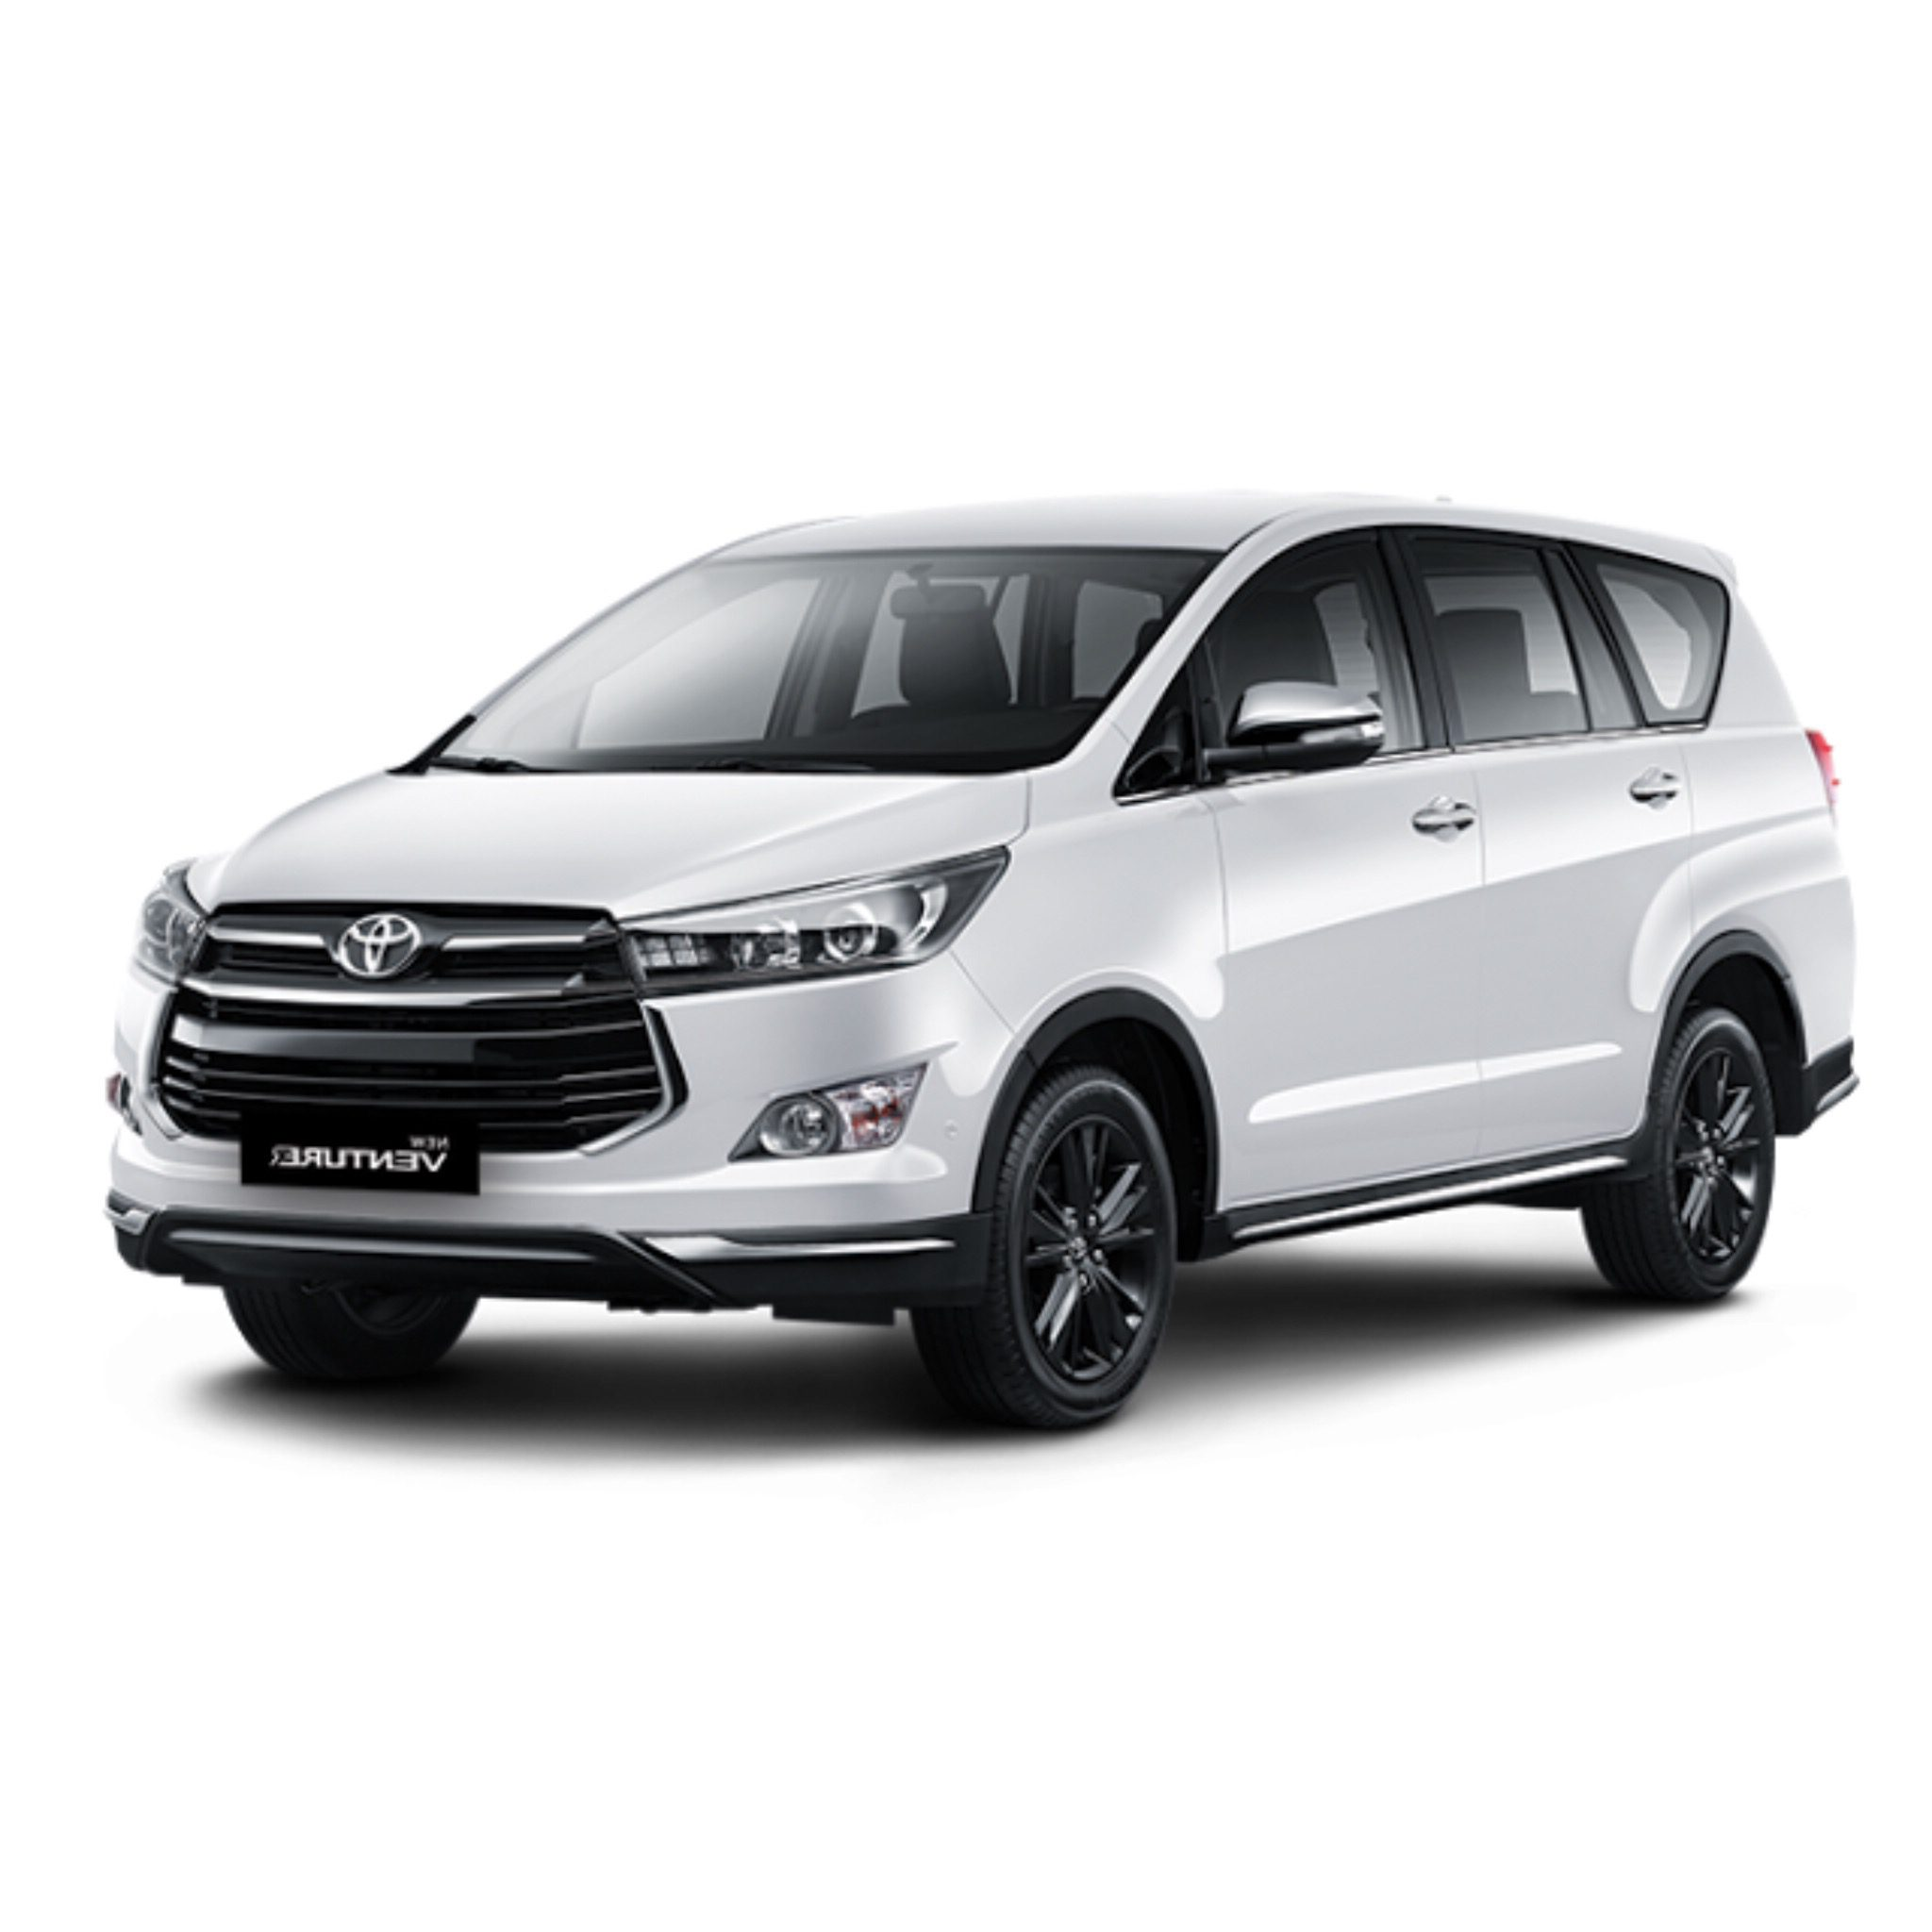 all new kijang innova g 2017 toyota yaris trd parts jogja dealer resmi nasmoco